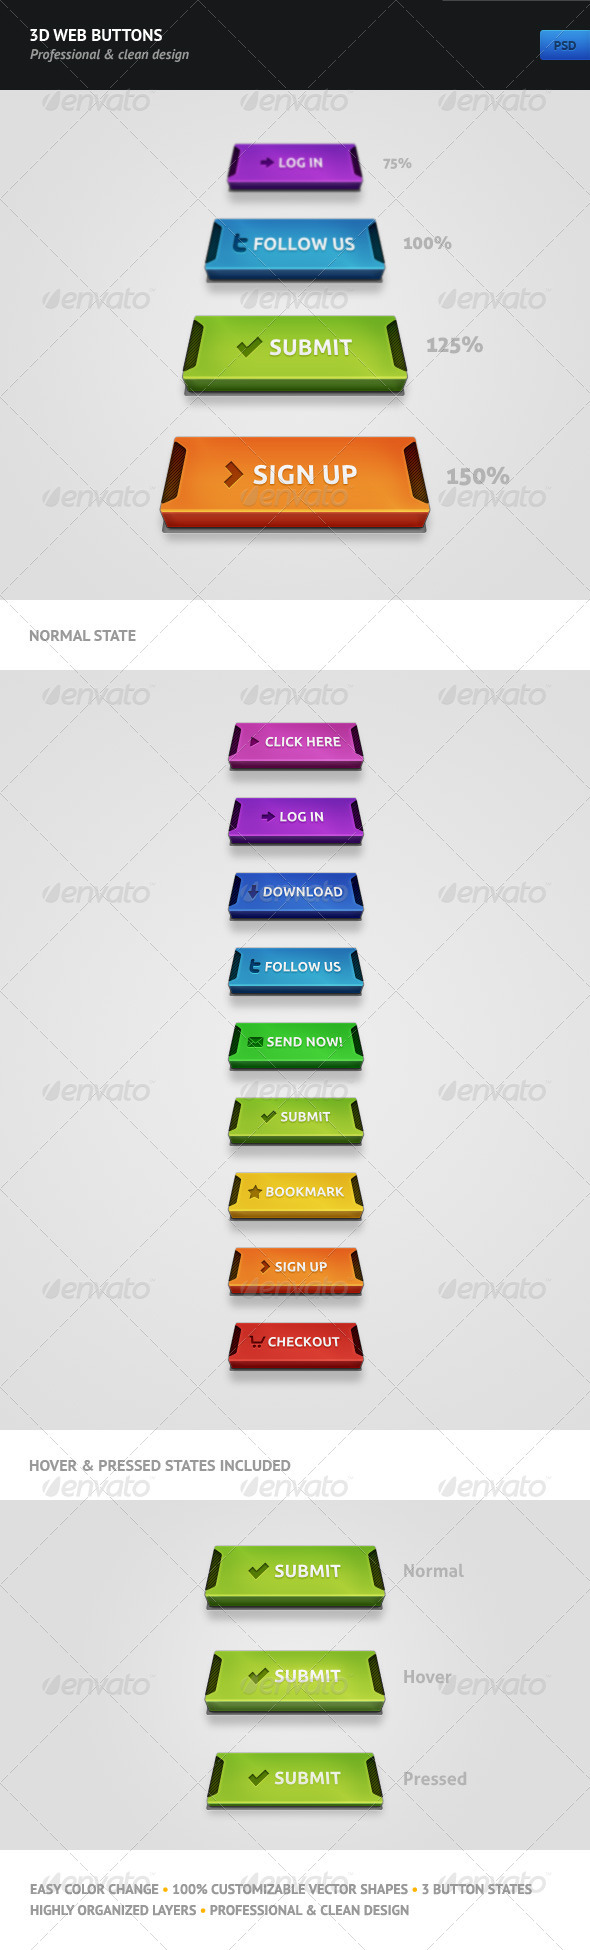 GraphicRiver 3D Web Buttons 493789